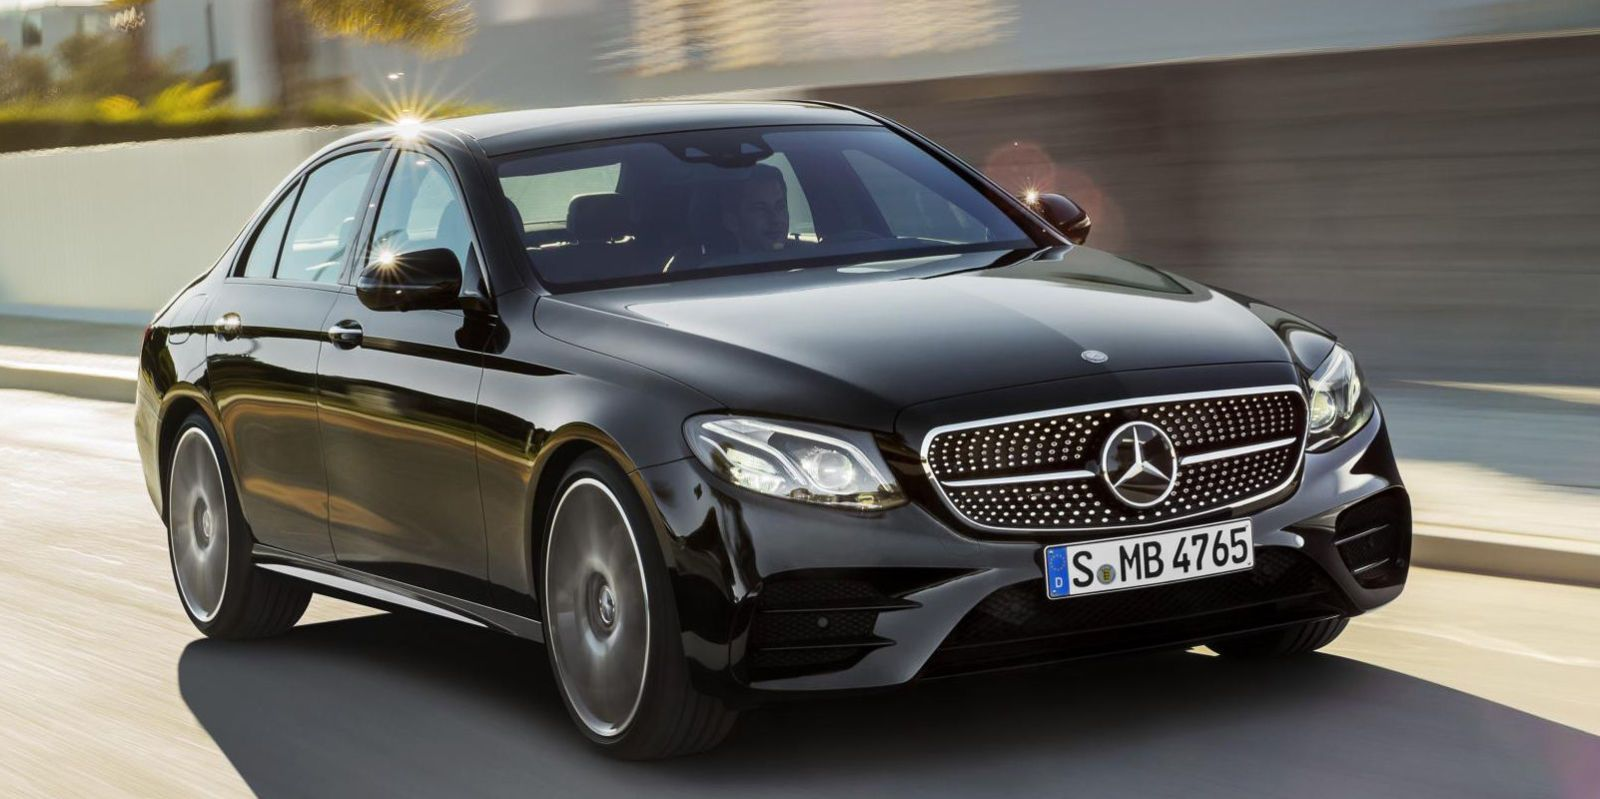 The 2017 Mercedes Amg E43 Gives The New E Class Twin Turbo Muscle